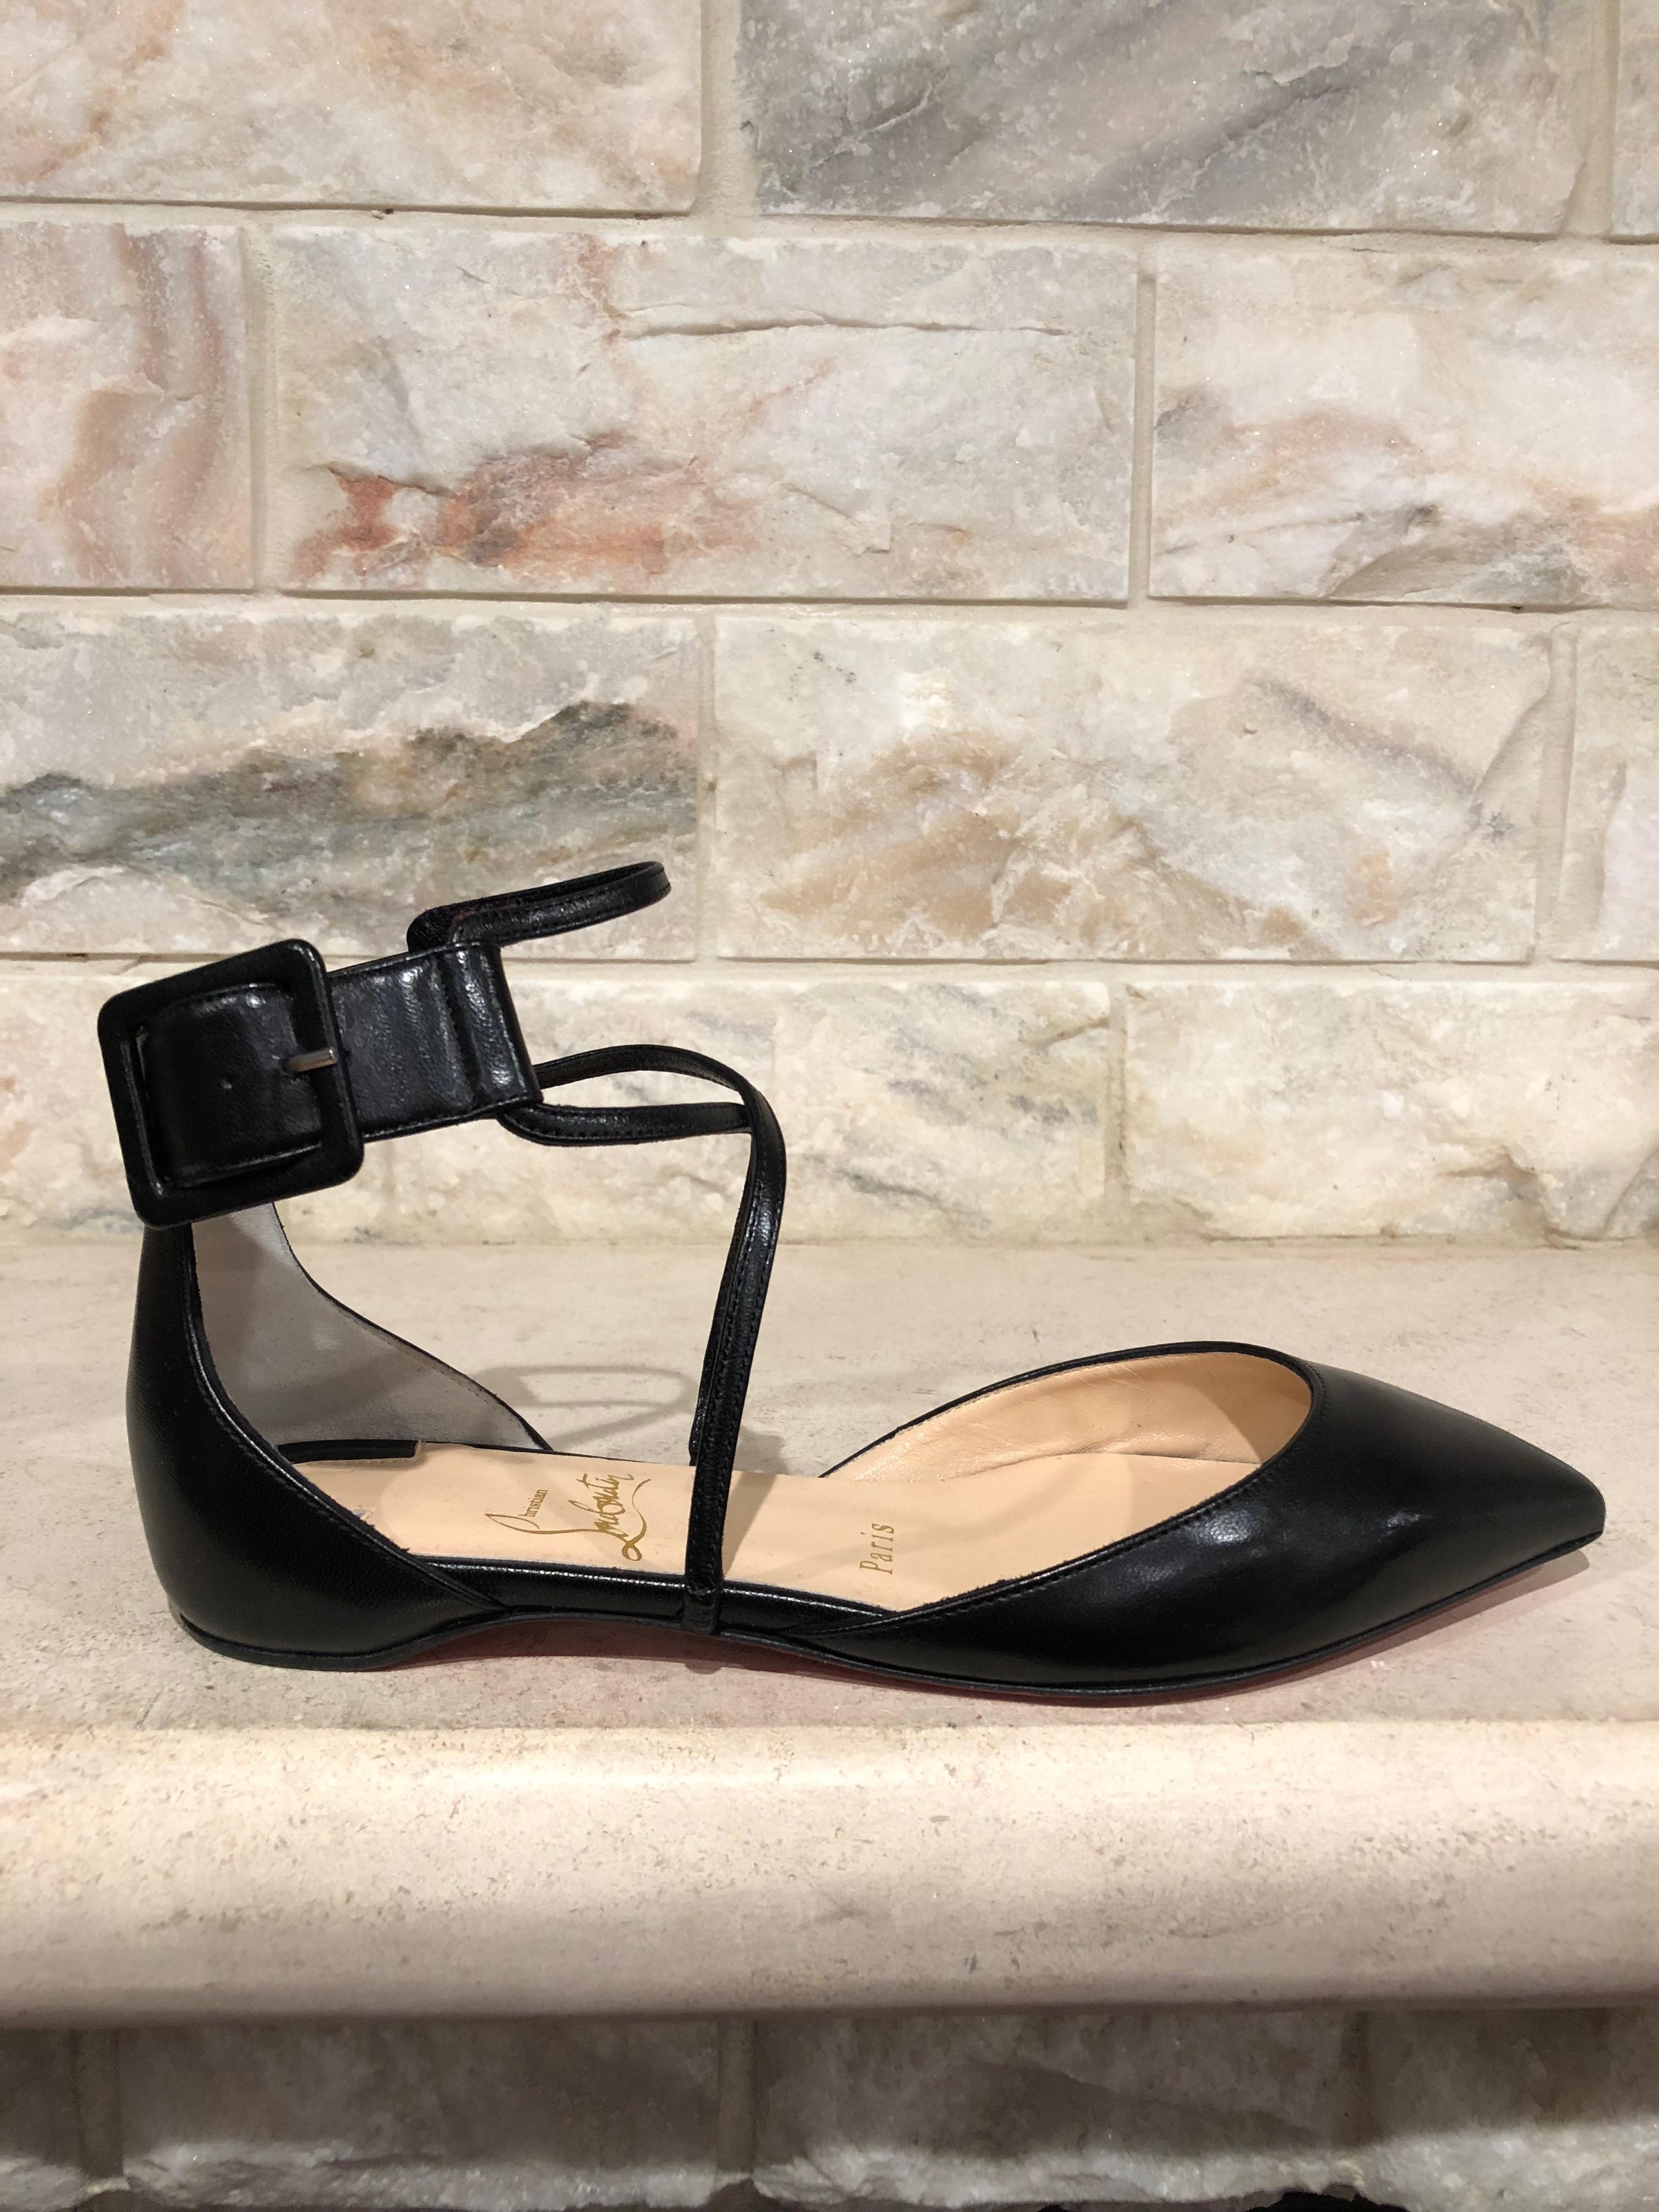 another chance 7b419 b33b8 Christian Louboutin Black Suzanna Strappy Pointed Ballerina ...